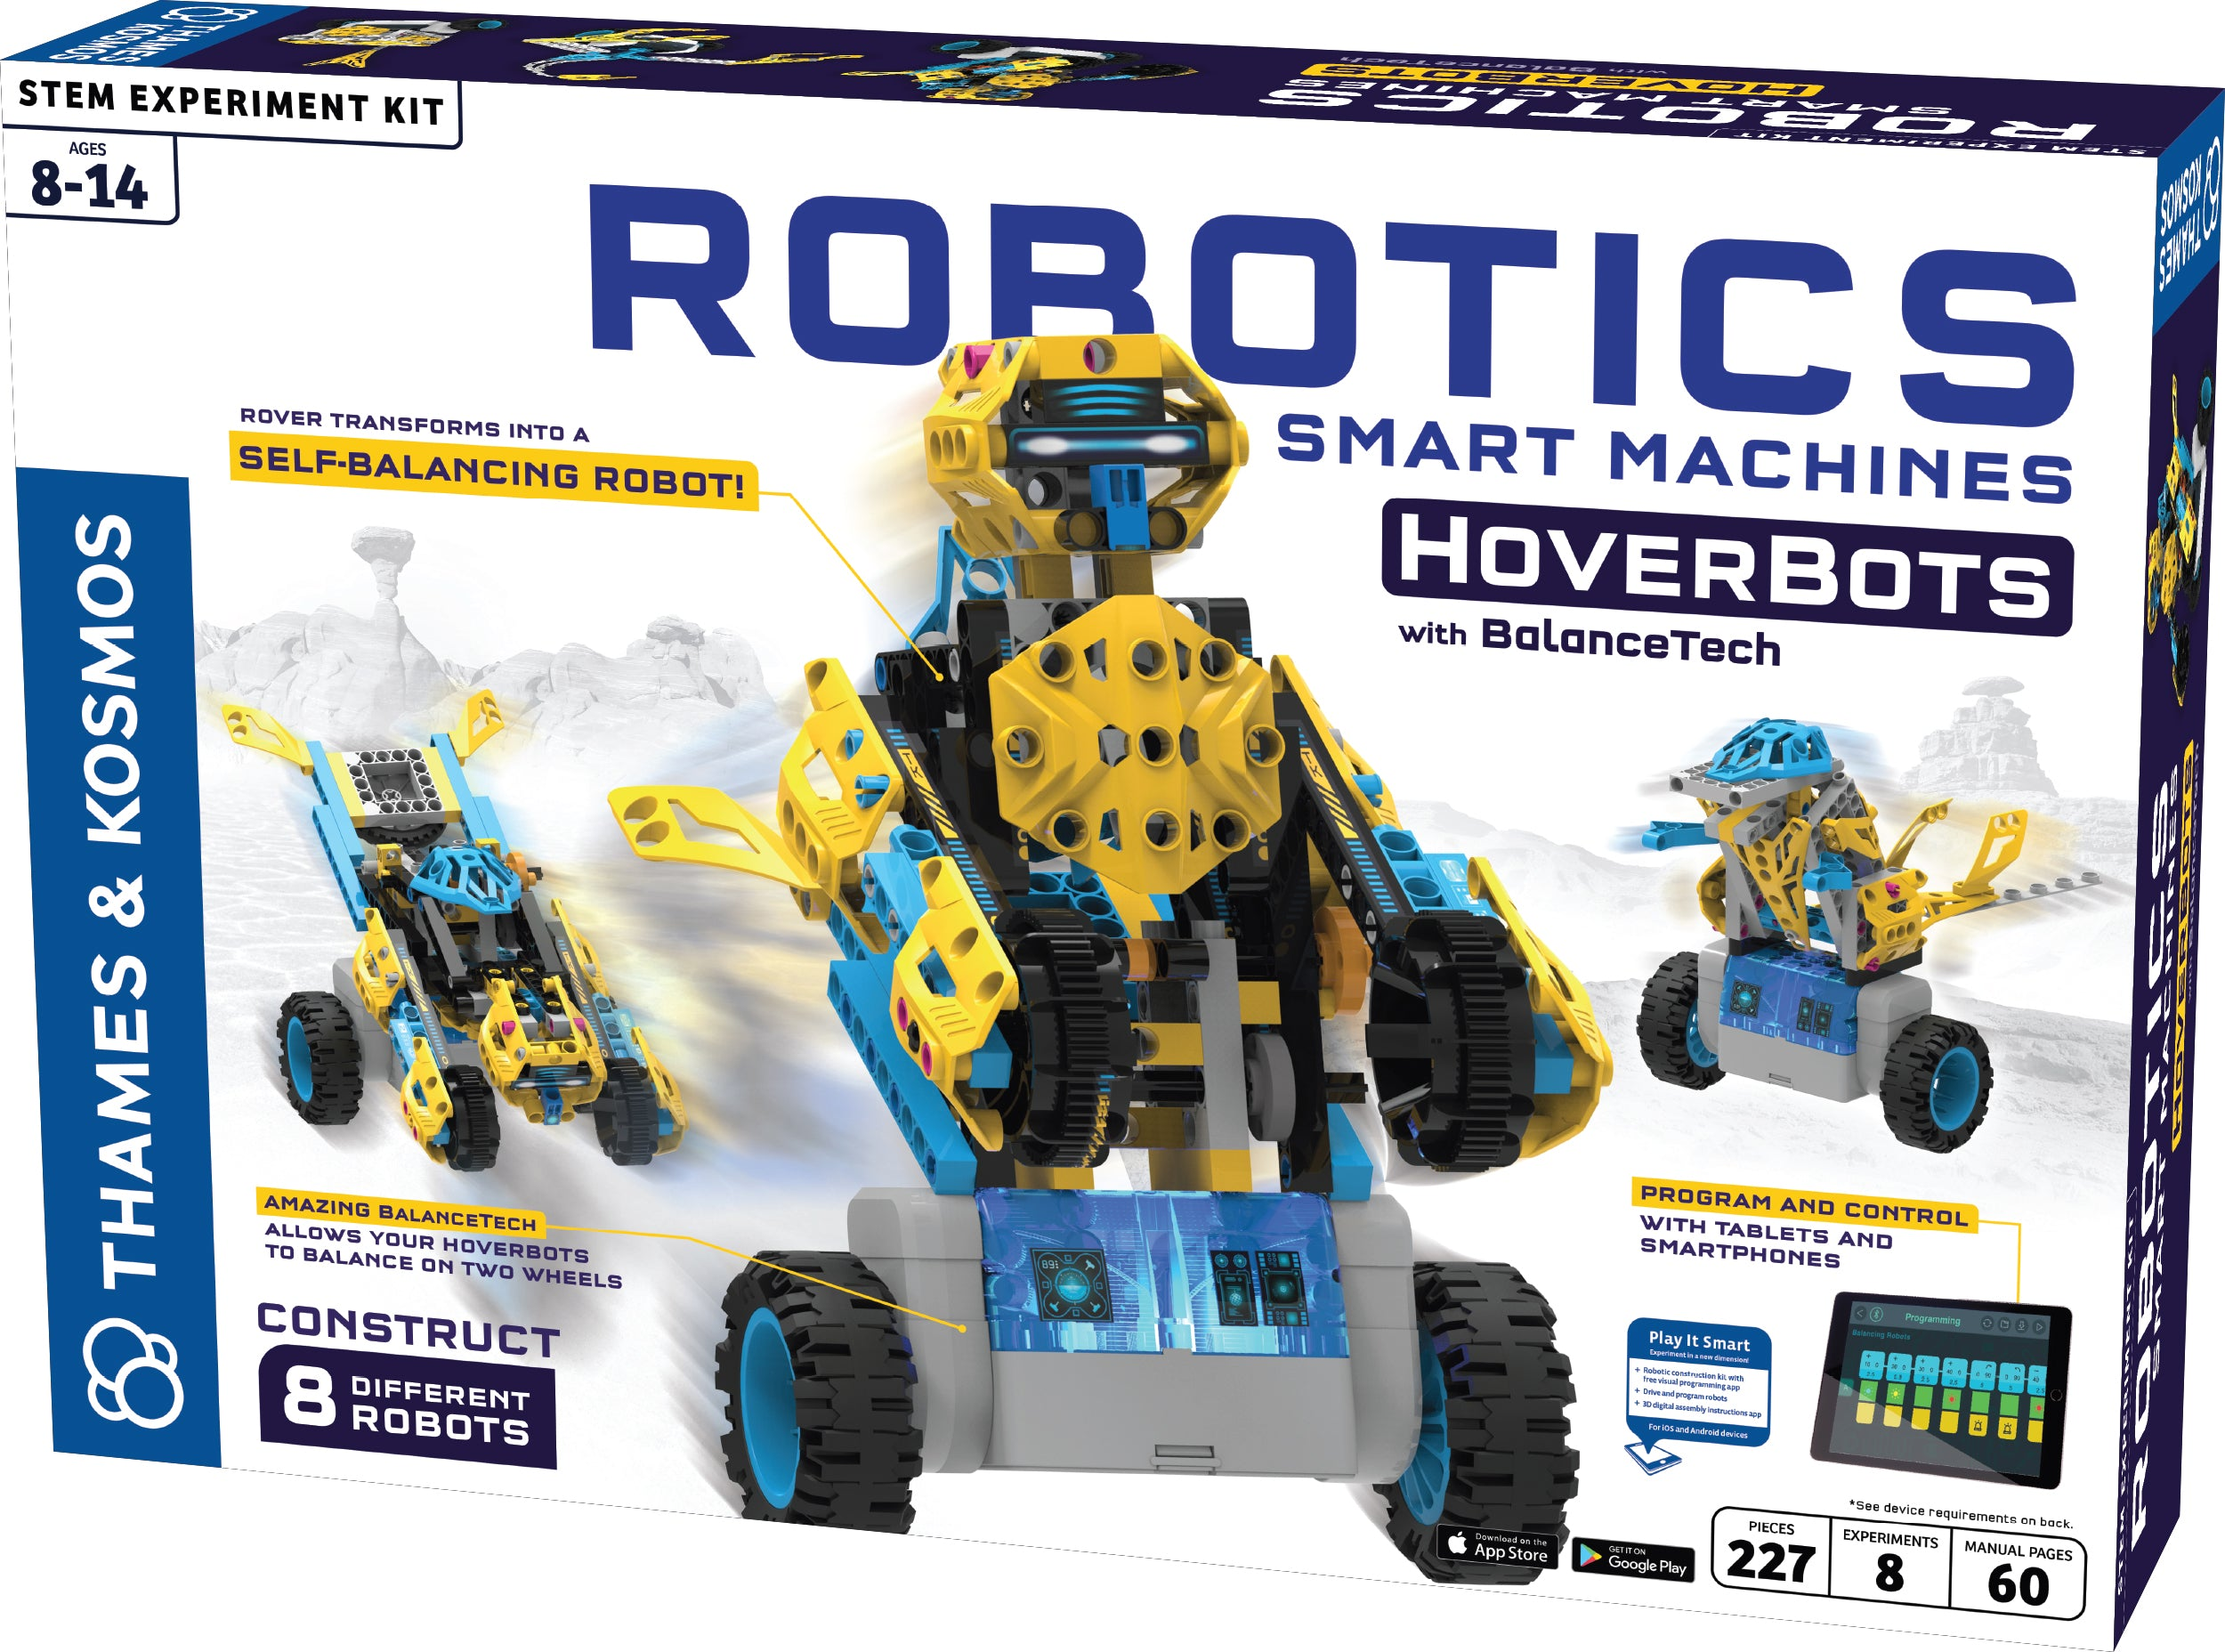 Robotics Smart Machines Hoverbots